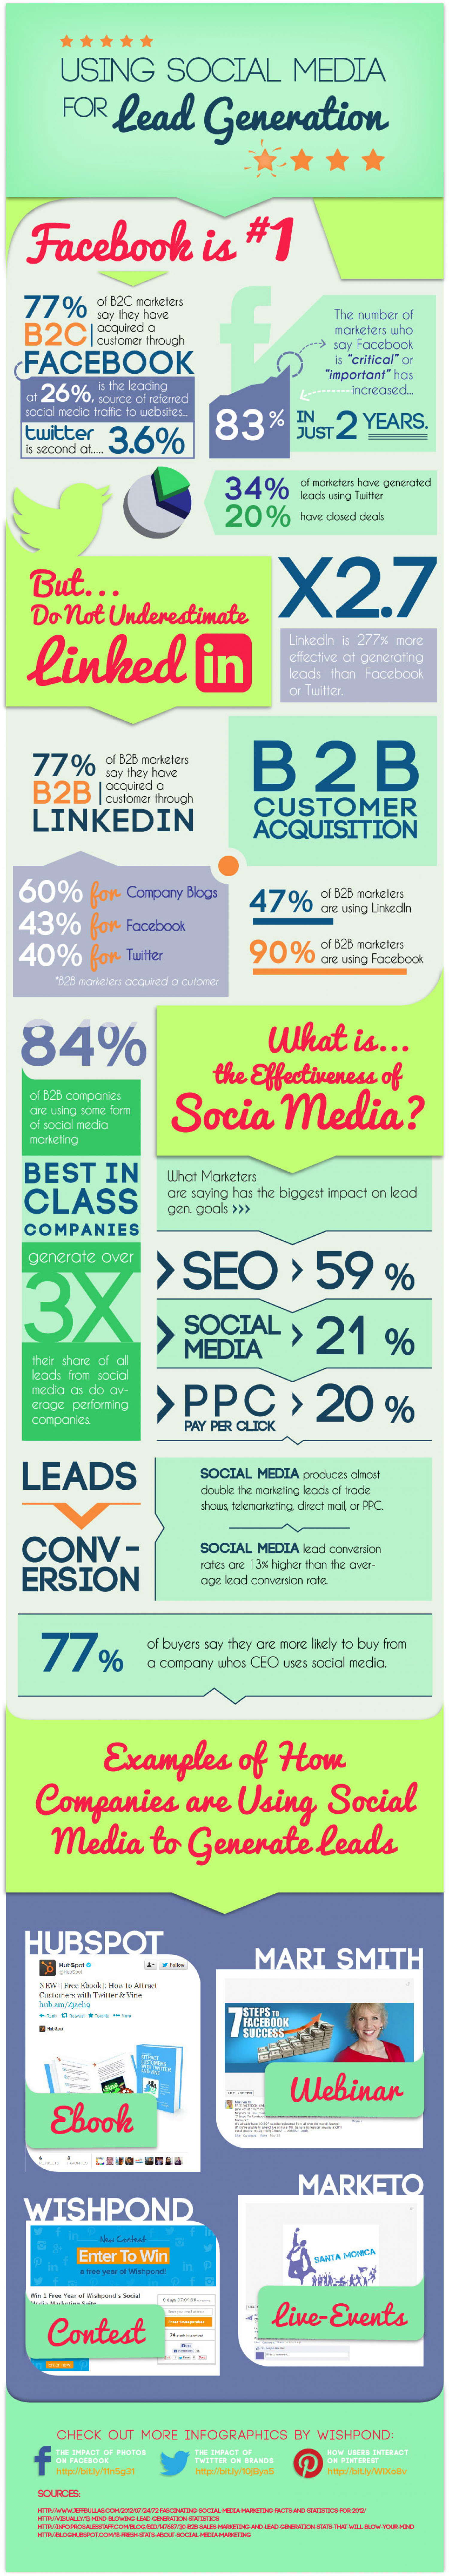 How to Use Social Media to Generate New Leads and Customers Infographic